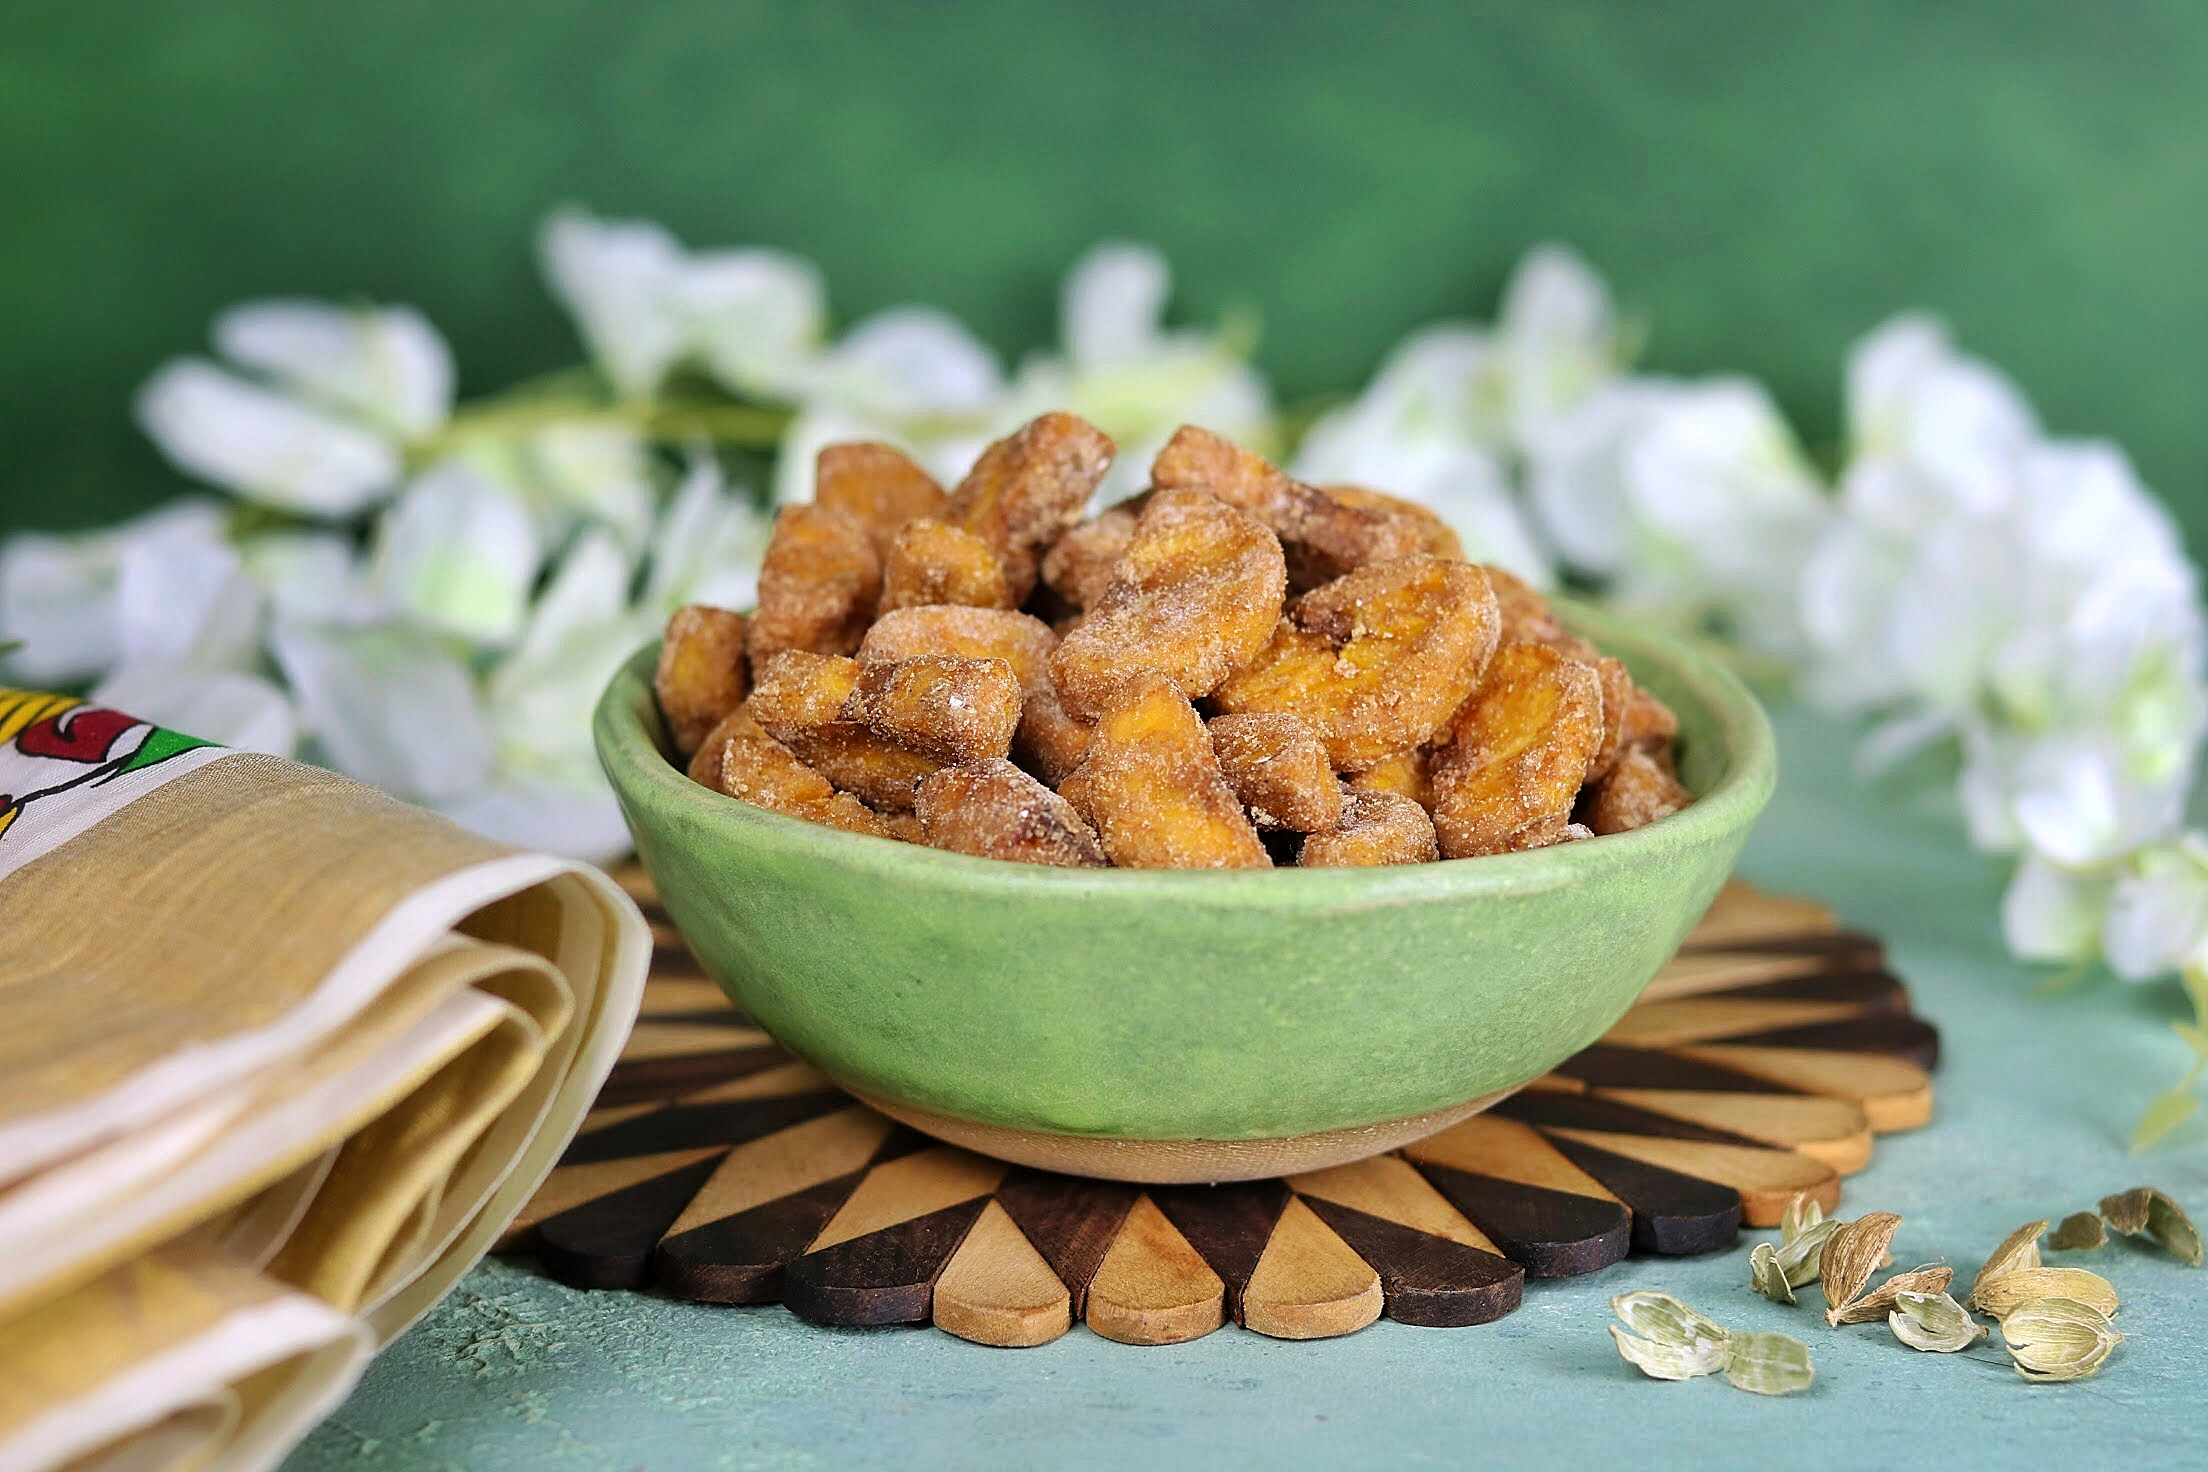 Sarkara Varatti (Spiced Plantain Chips)